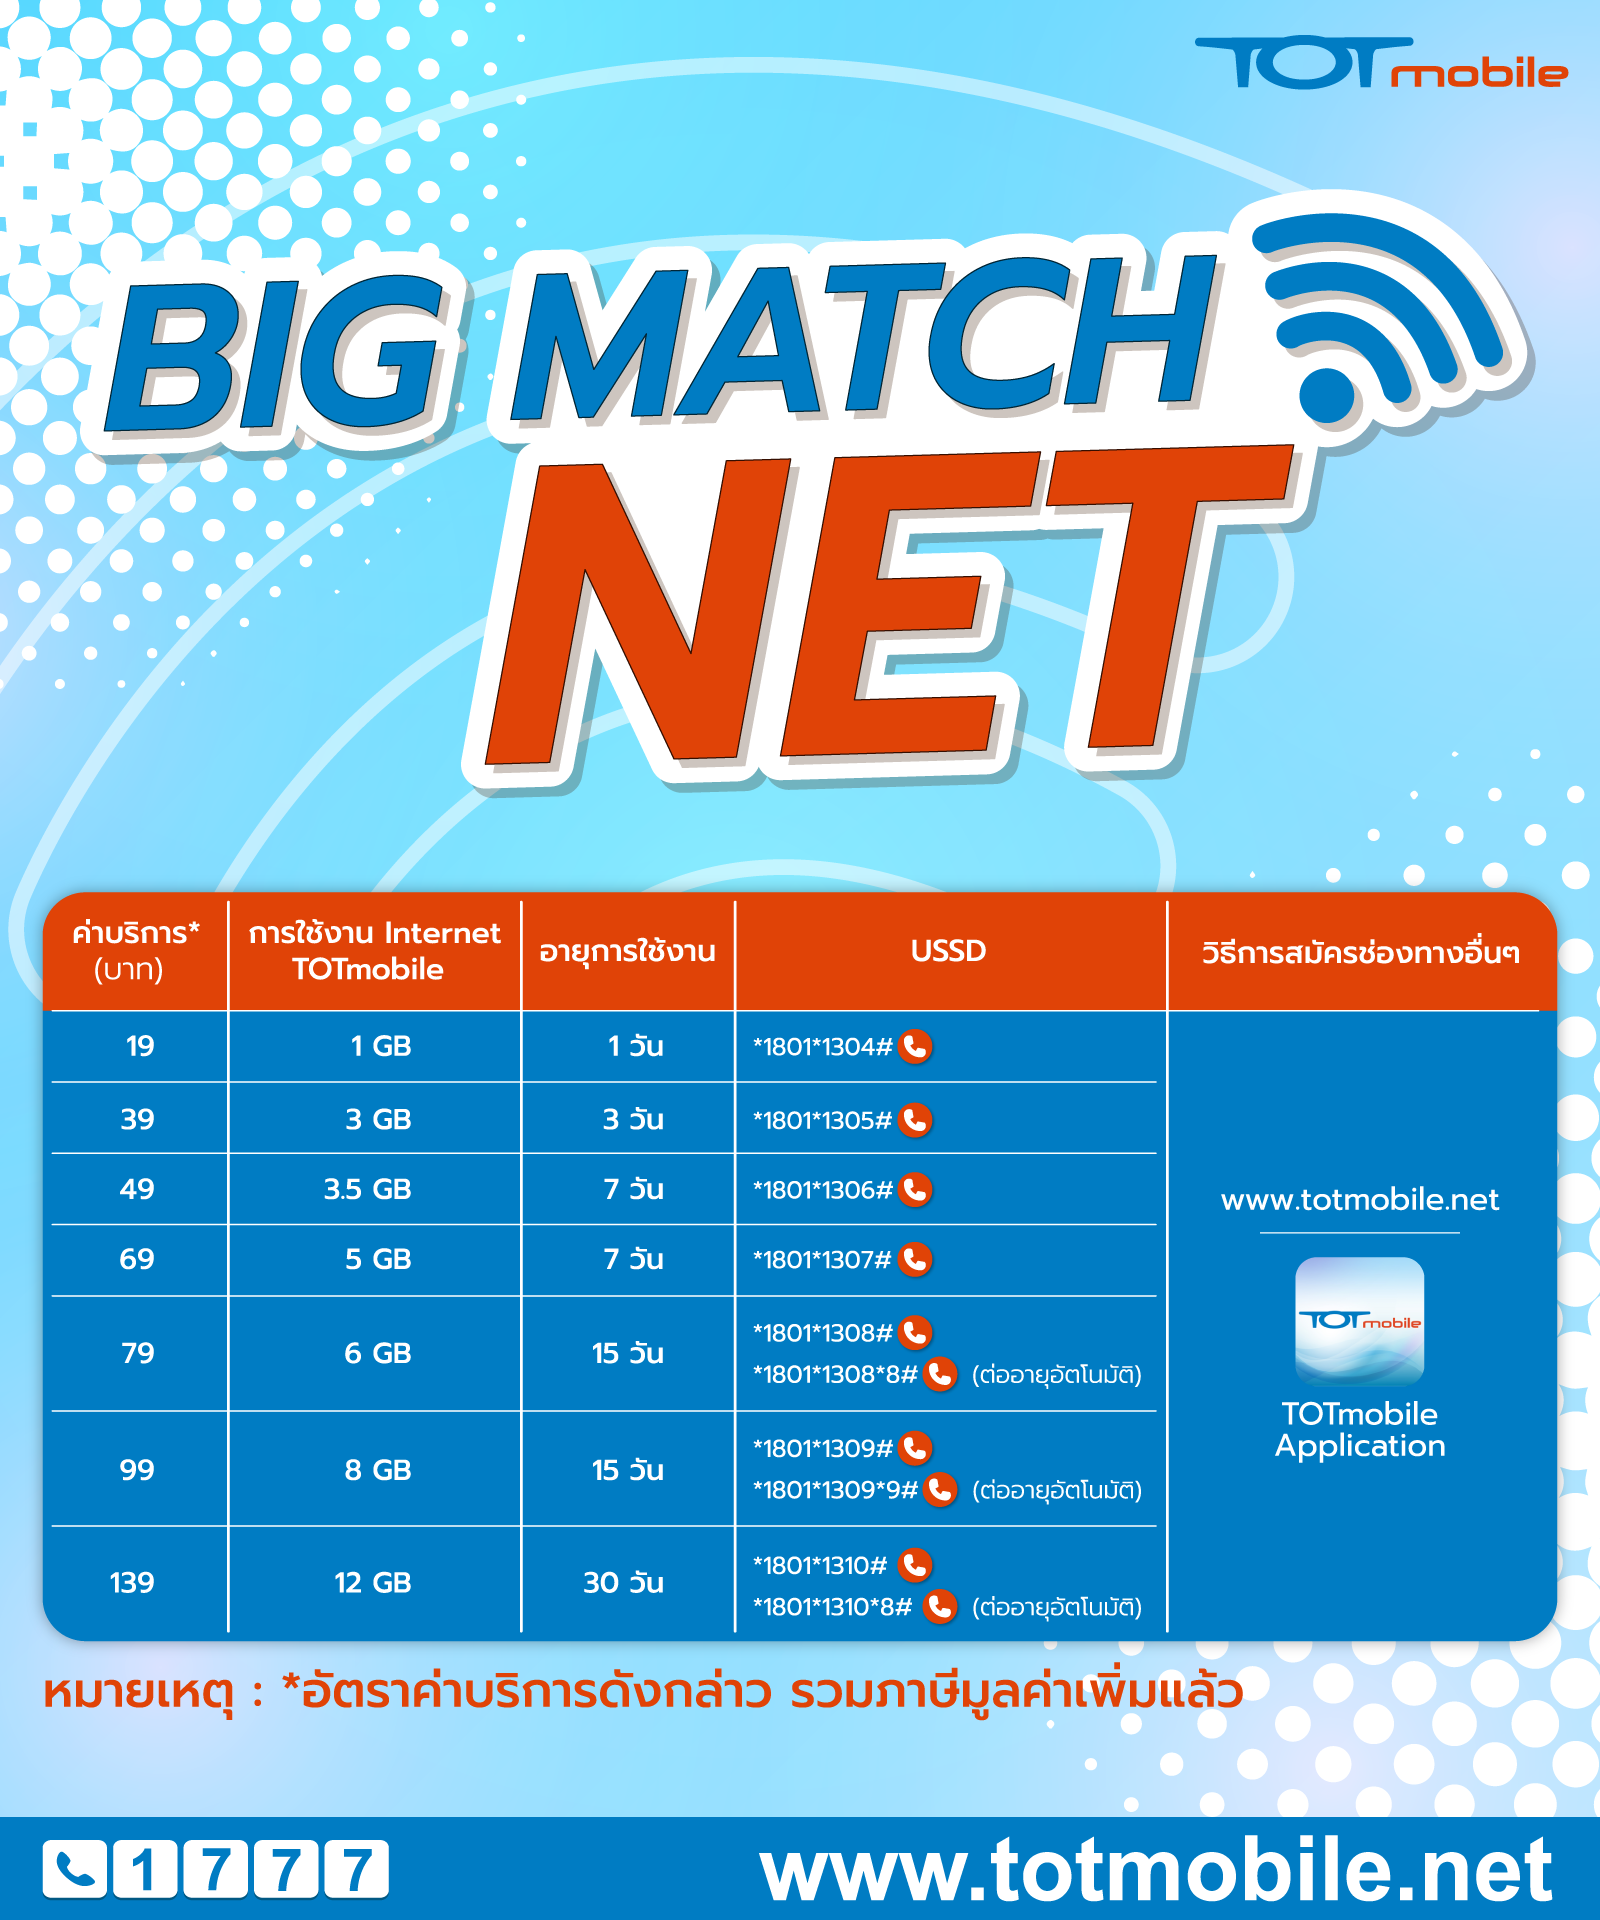 TableBig_Match_Net_01